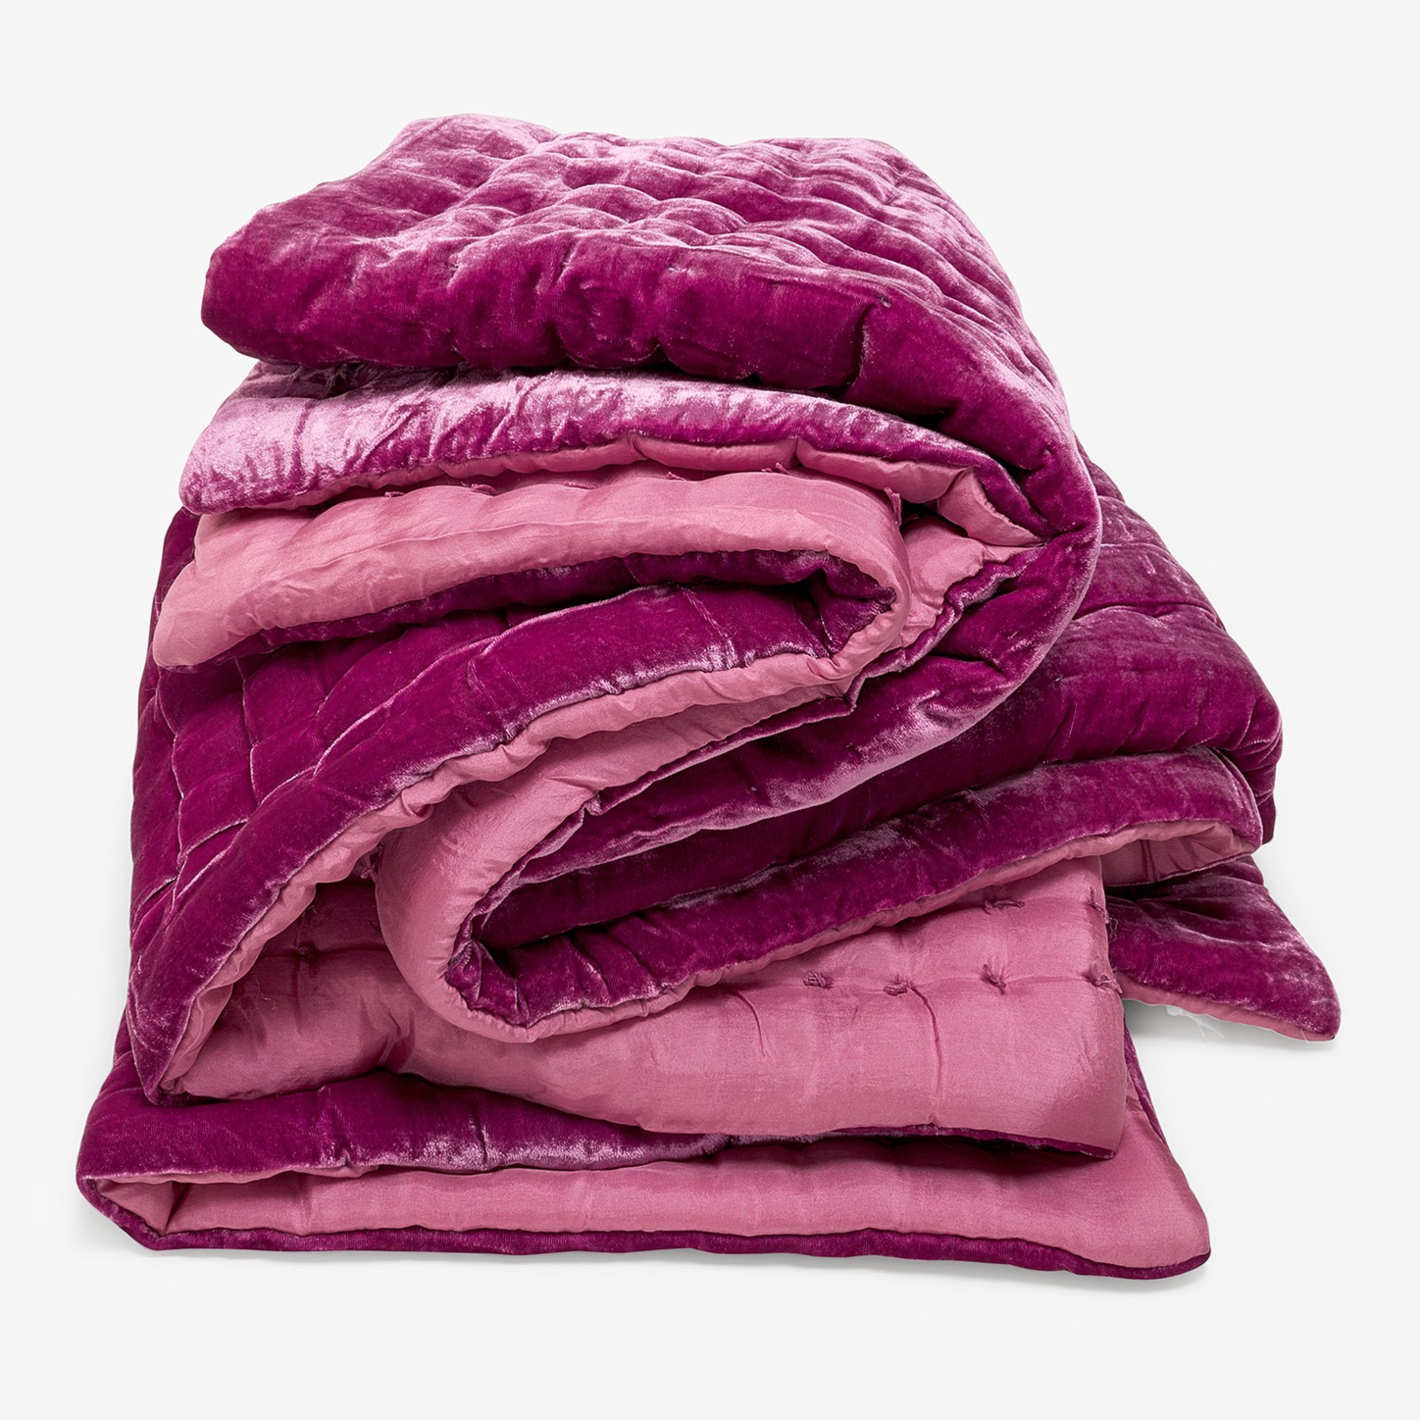 abcDNA Luminous Velvet Throw Plum